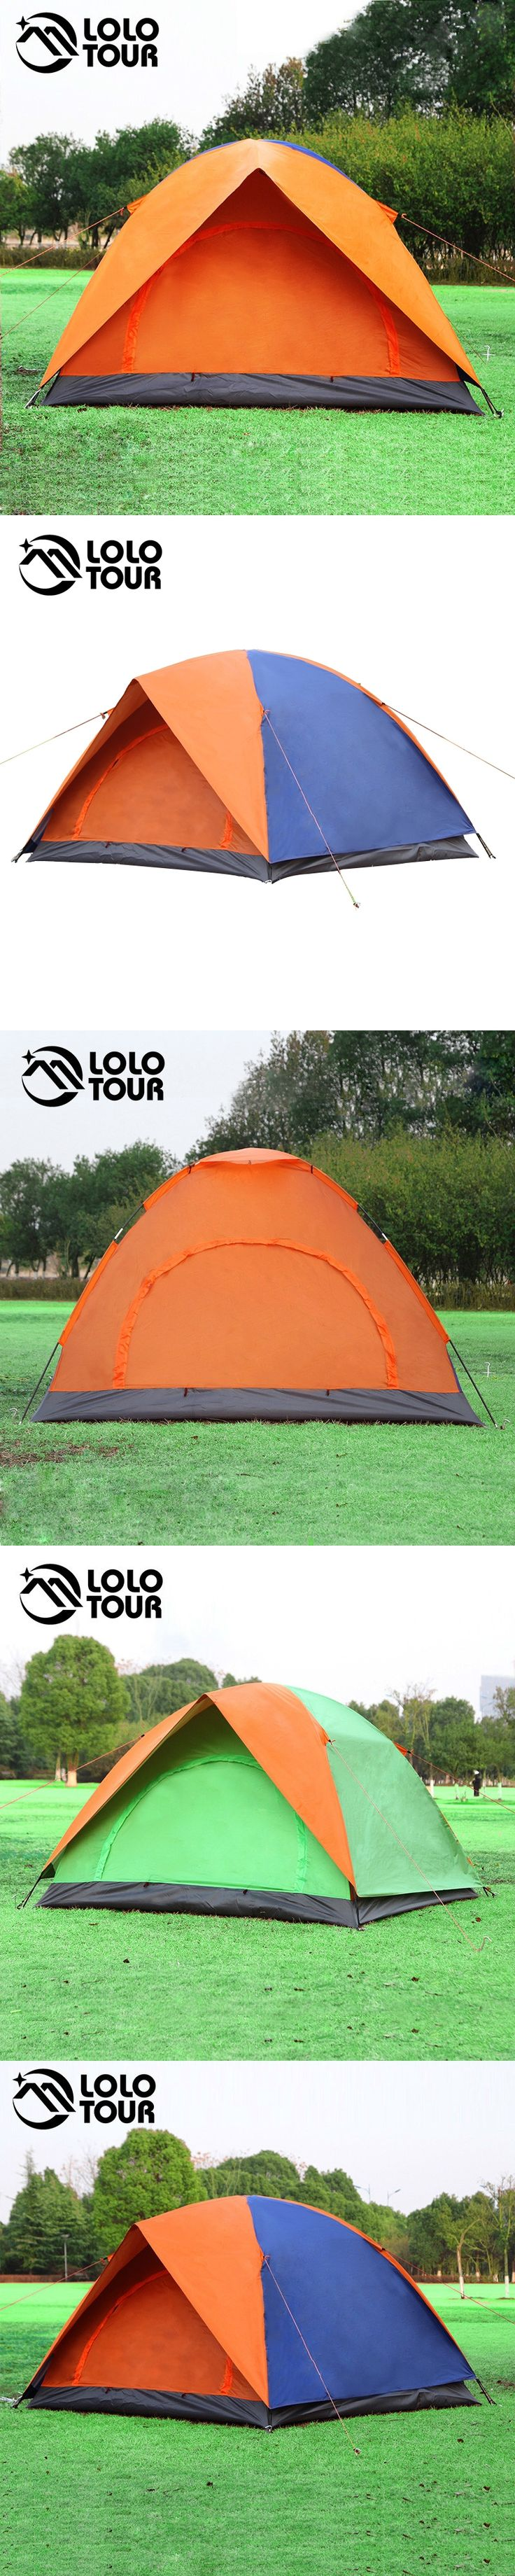 Double Layer 3-4 Person Outdoor Large Canvas Camping Beach Awning Ultralight Hiking Fishing Hunting Picnic Barraca Carpas Tente